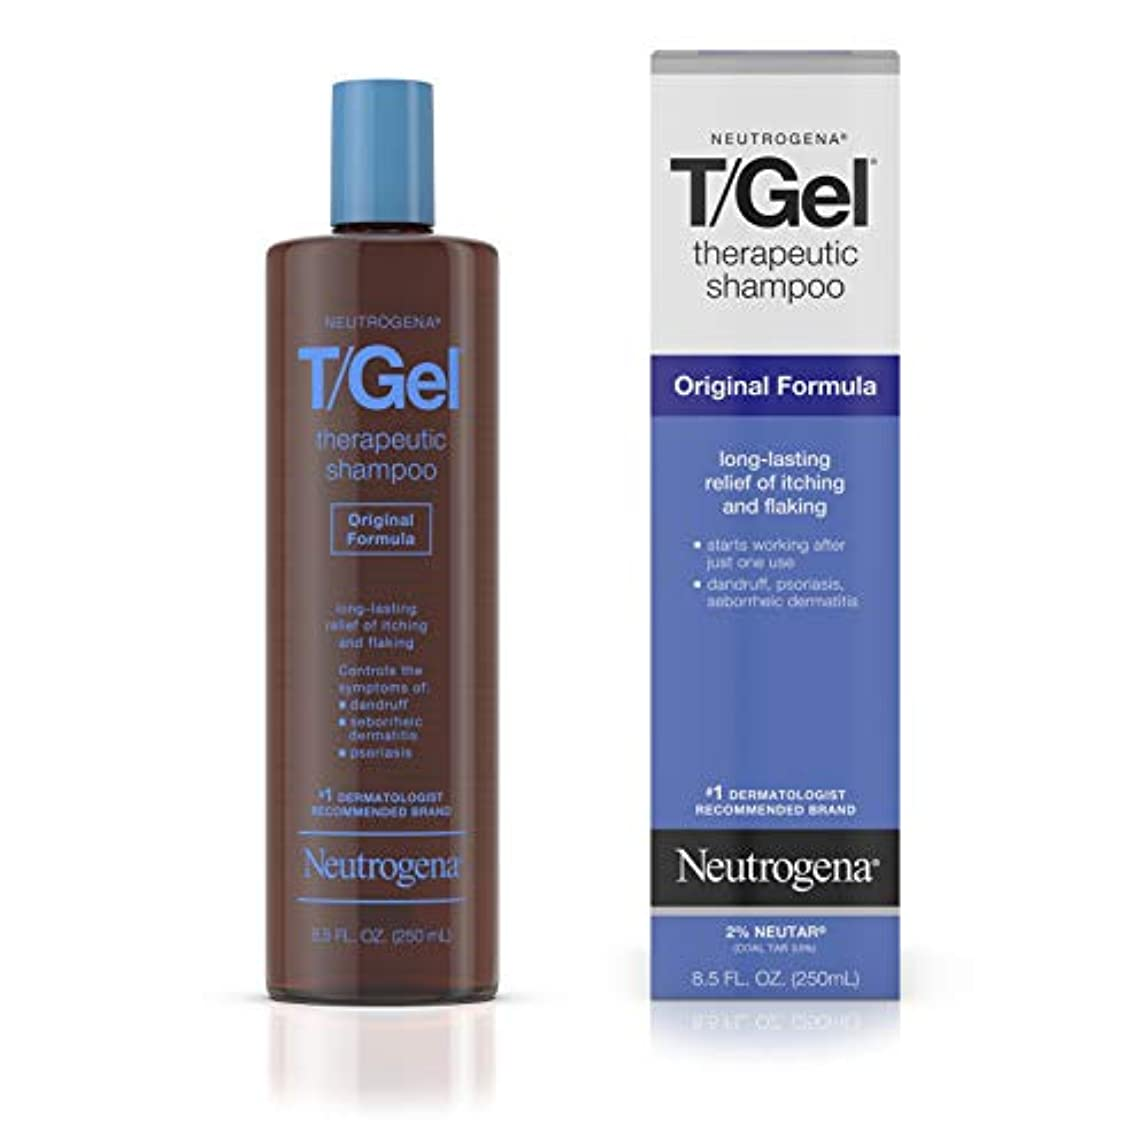 Neutrogena T/Gel Shampoo Original 250 ml (並行輸入品)